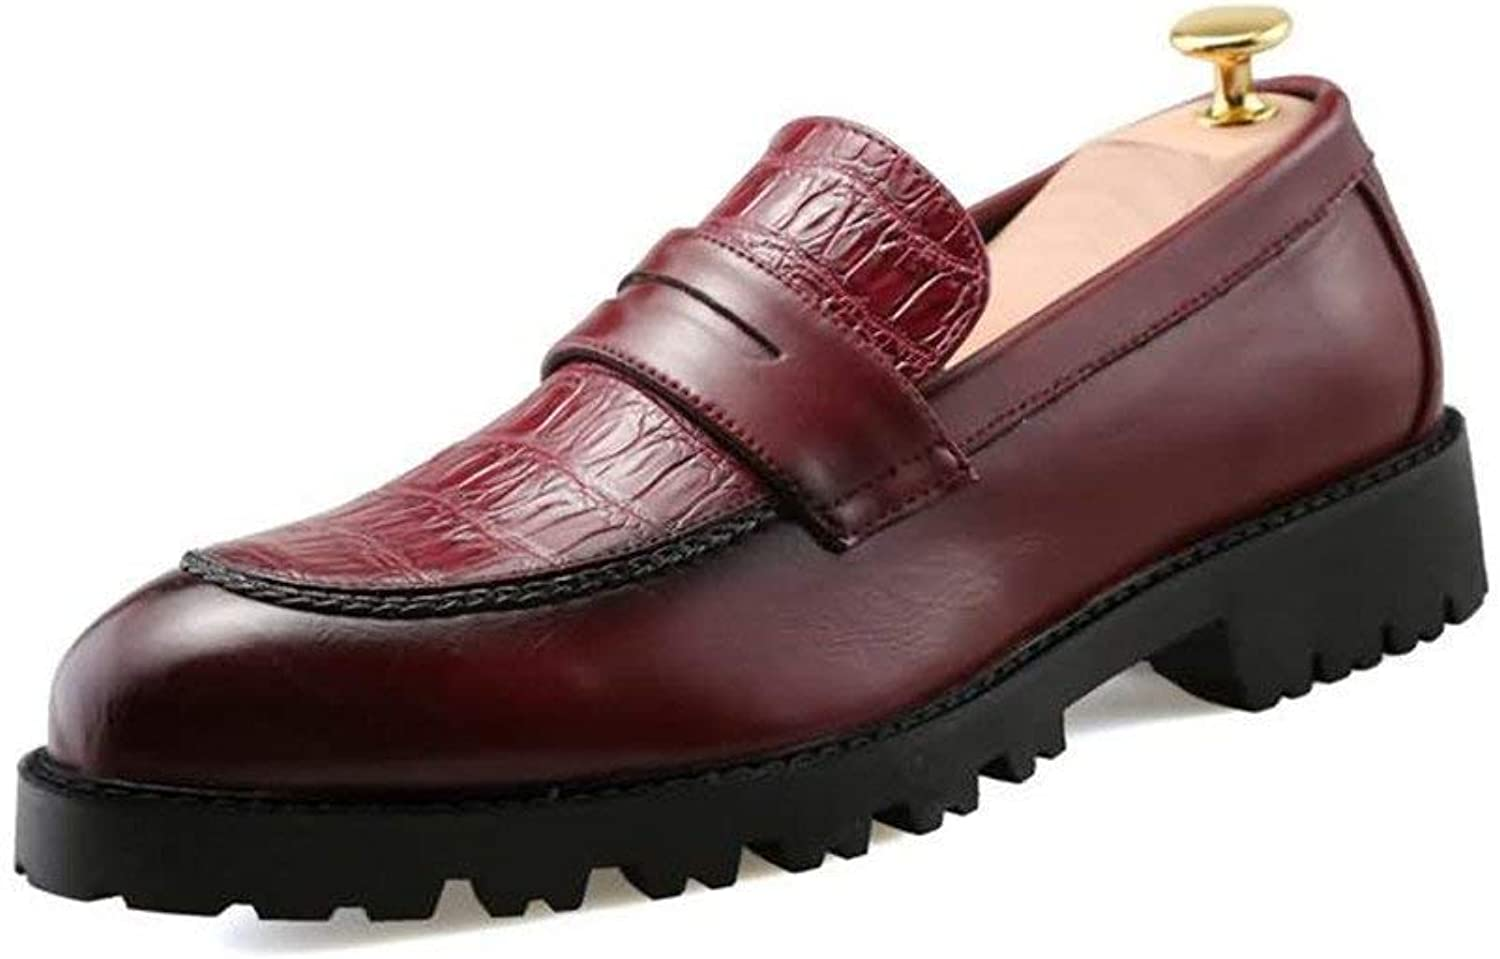 2018 Mens Oxfords Flat Heel PU Leather Slip on Formal shoes (color  Red, Size  40 EU) (color   Red, Size   43 EU)